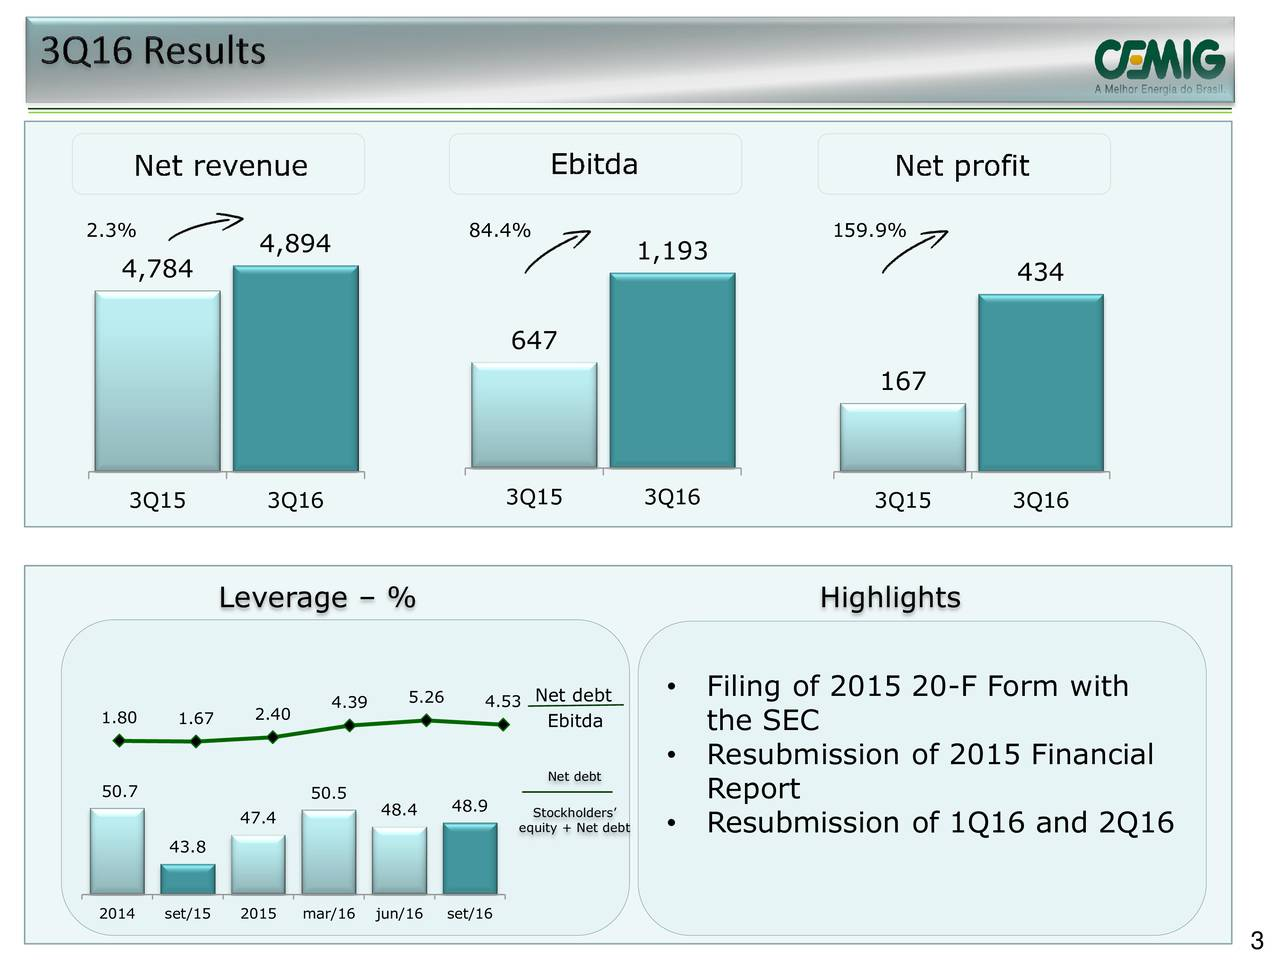 4,894 1,193 4,784 434 647 167 3Q15 3Q16 3Q15 3Q16 3Q15 3Q16 Leverage  % Highlights 4.39 5.26 4.53 Net debt  Filing of 2015 20-F Form with 1.80 1.67 2.40 Ebitda the SEC Resubmission of 2015 Financial Net debt 50.7 50.5 48.9 Report 47.4 48.4 equity + Net dbtResubmission of 1Q16 and 2Q16 43.8 2014 set/15 2015 mar/16jun/16 set/16 3